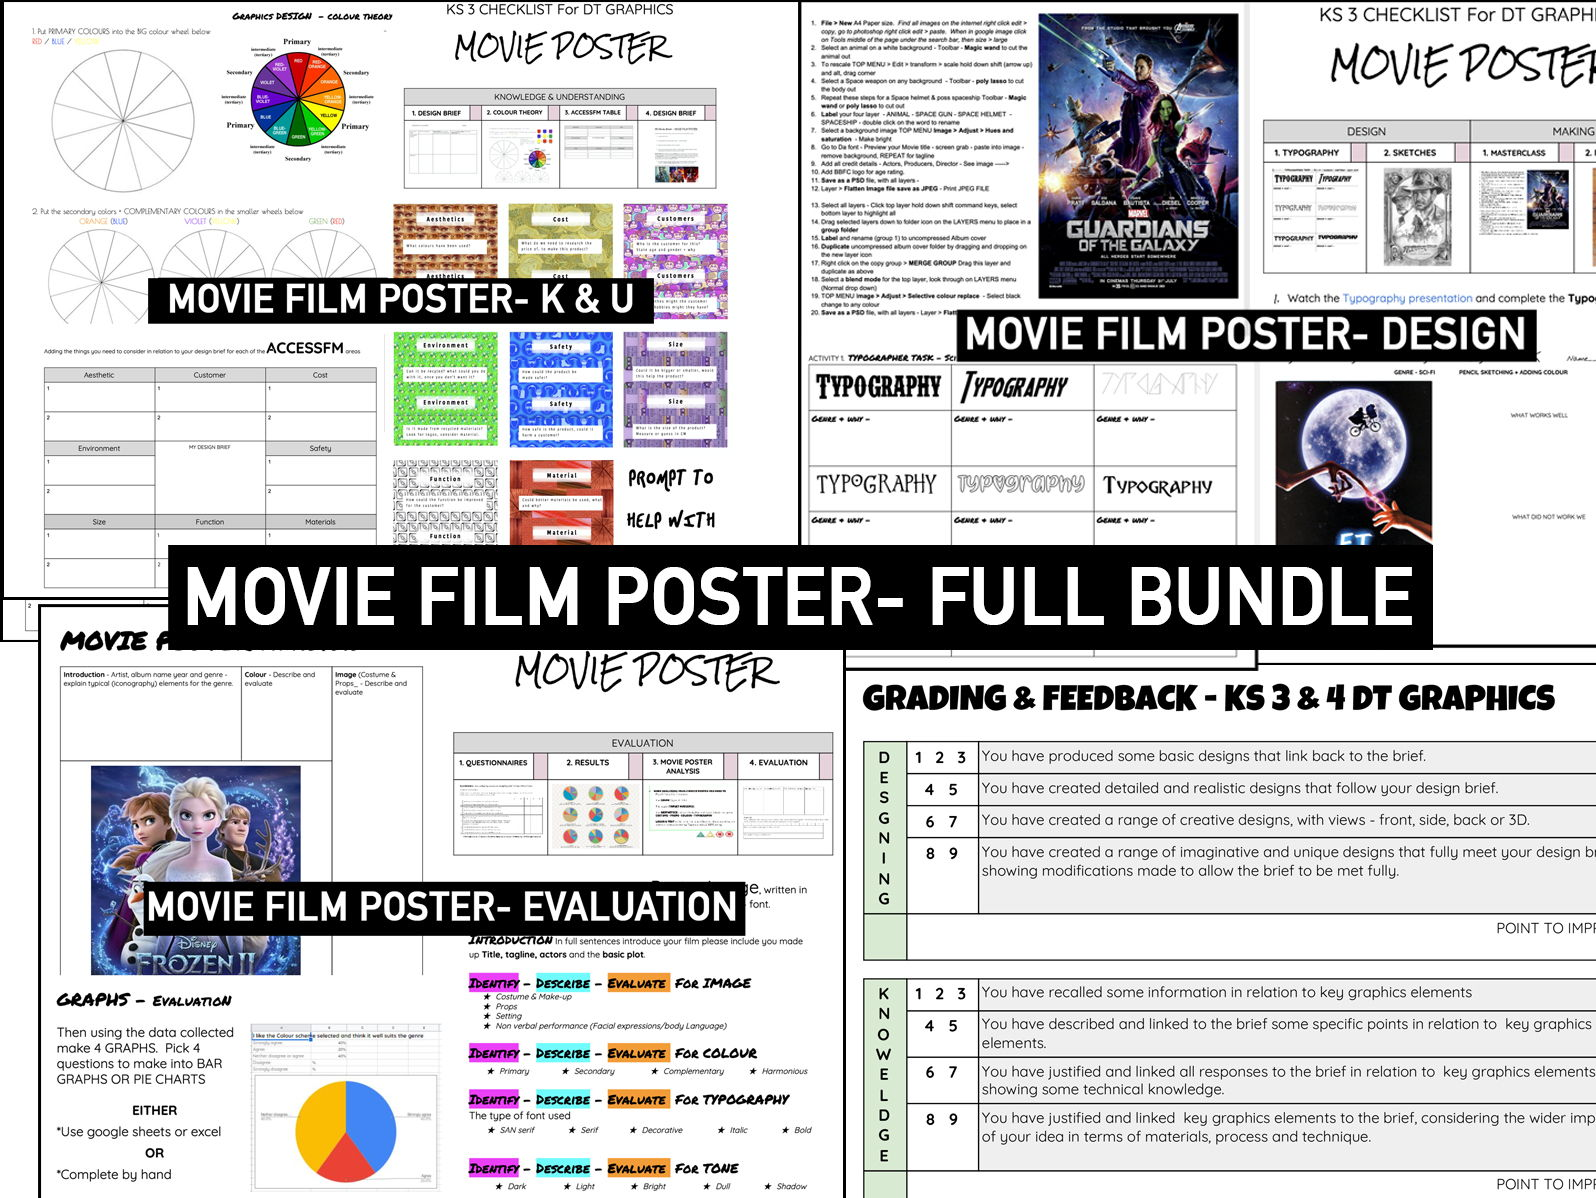 ADVERTISING | Research, Design & Evaluation | FILM POSTER